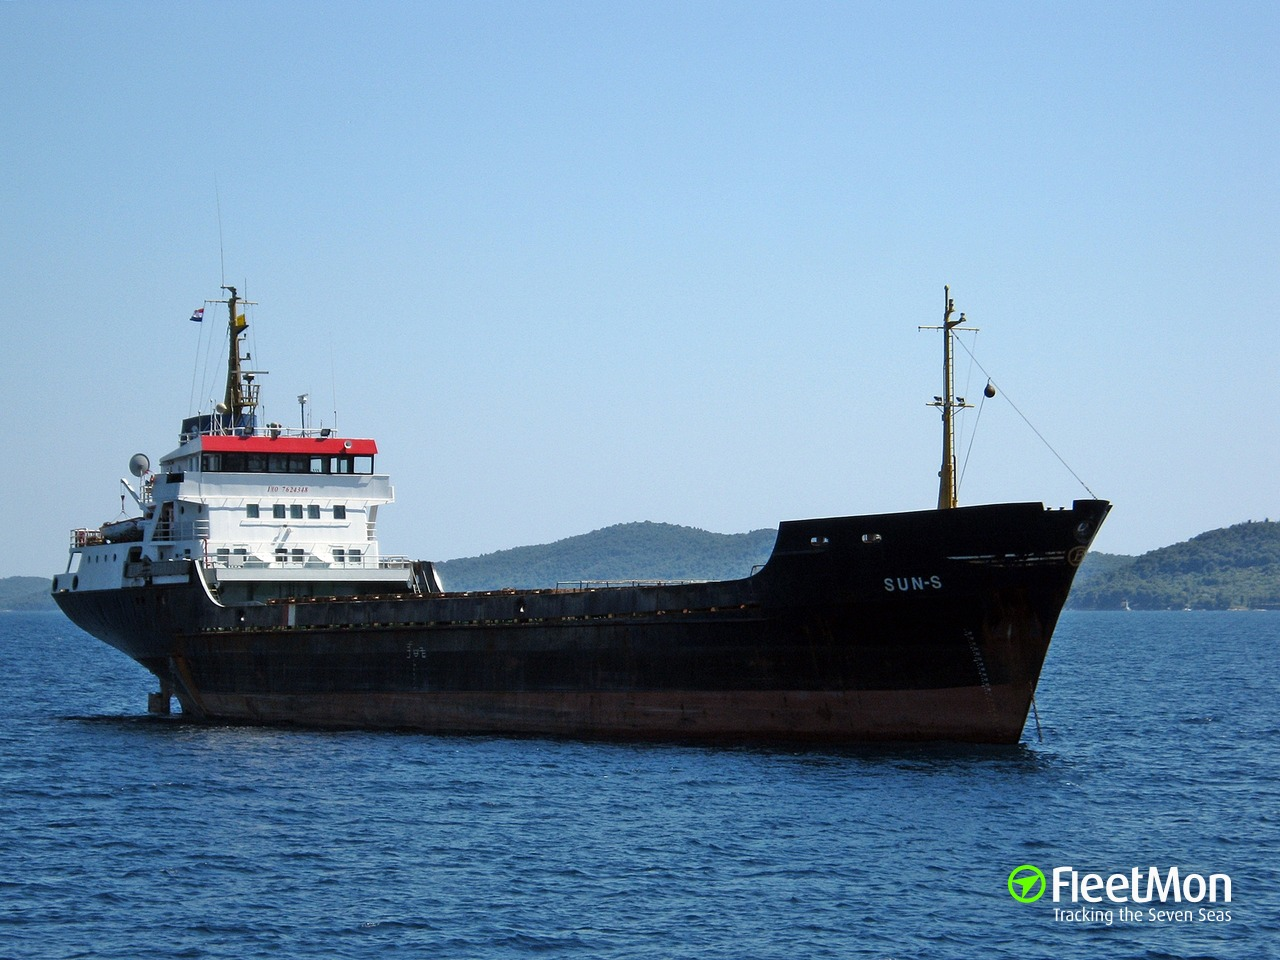 Cargo ship damaged after contacting pier, Crete